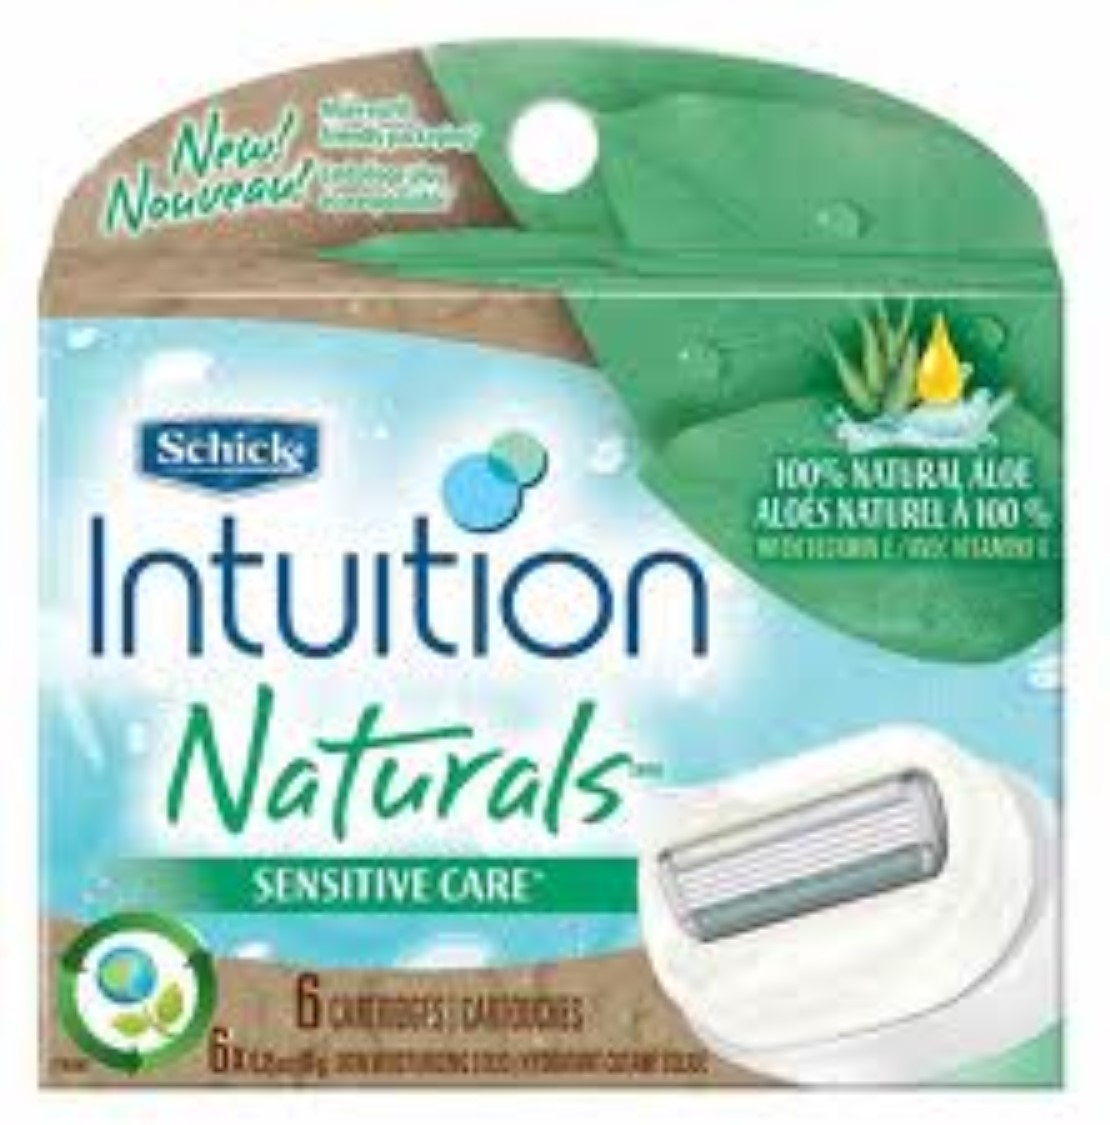 Schick Intuition Naturals Cartridges Sensitive Care 6 Each (Pack of 4)